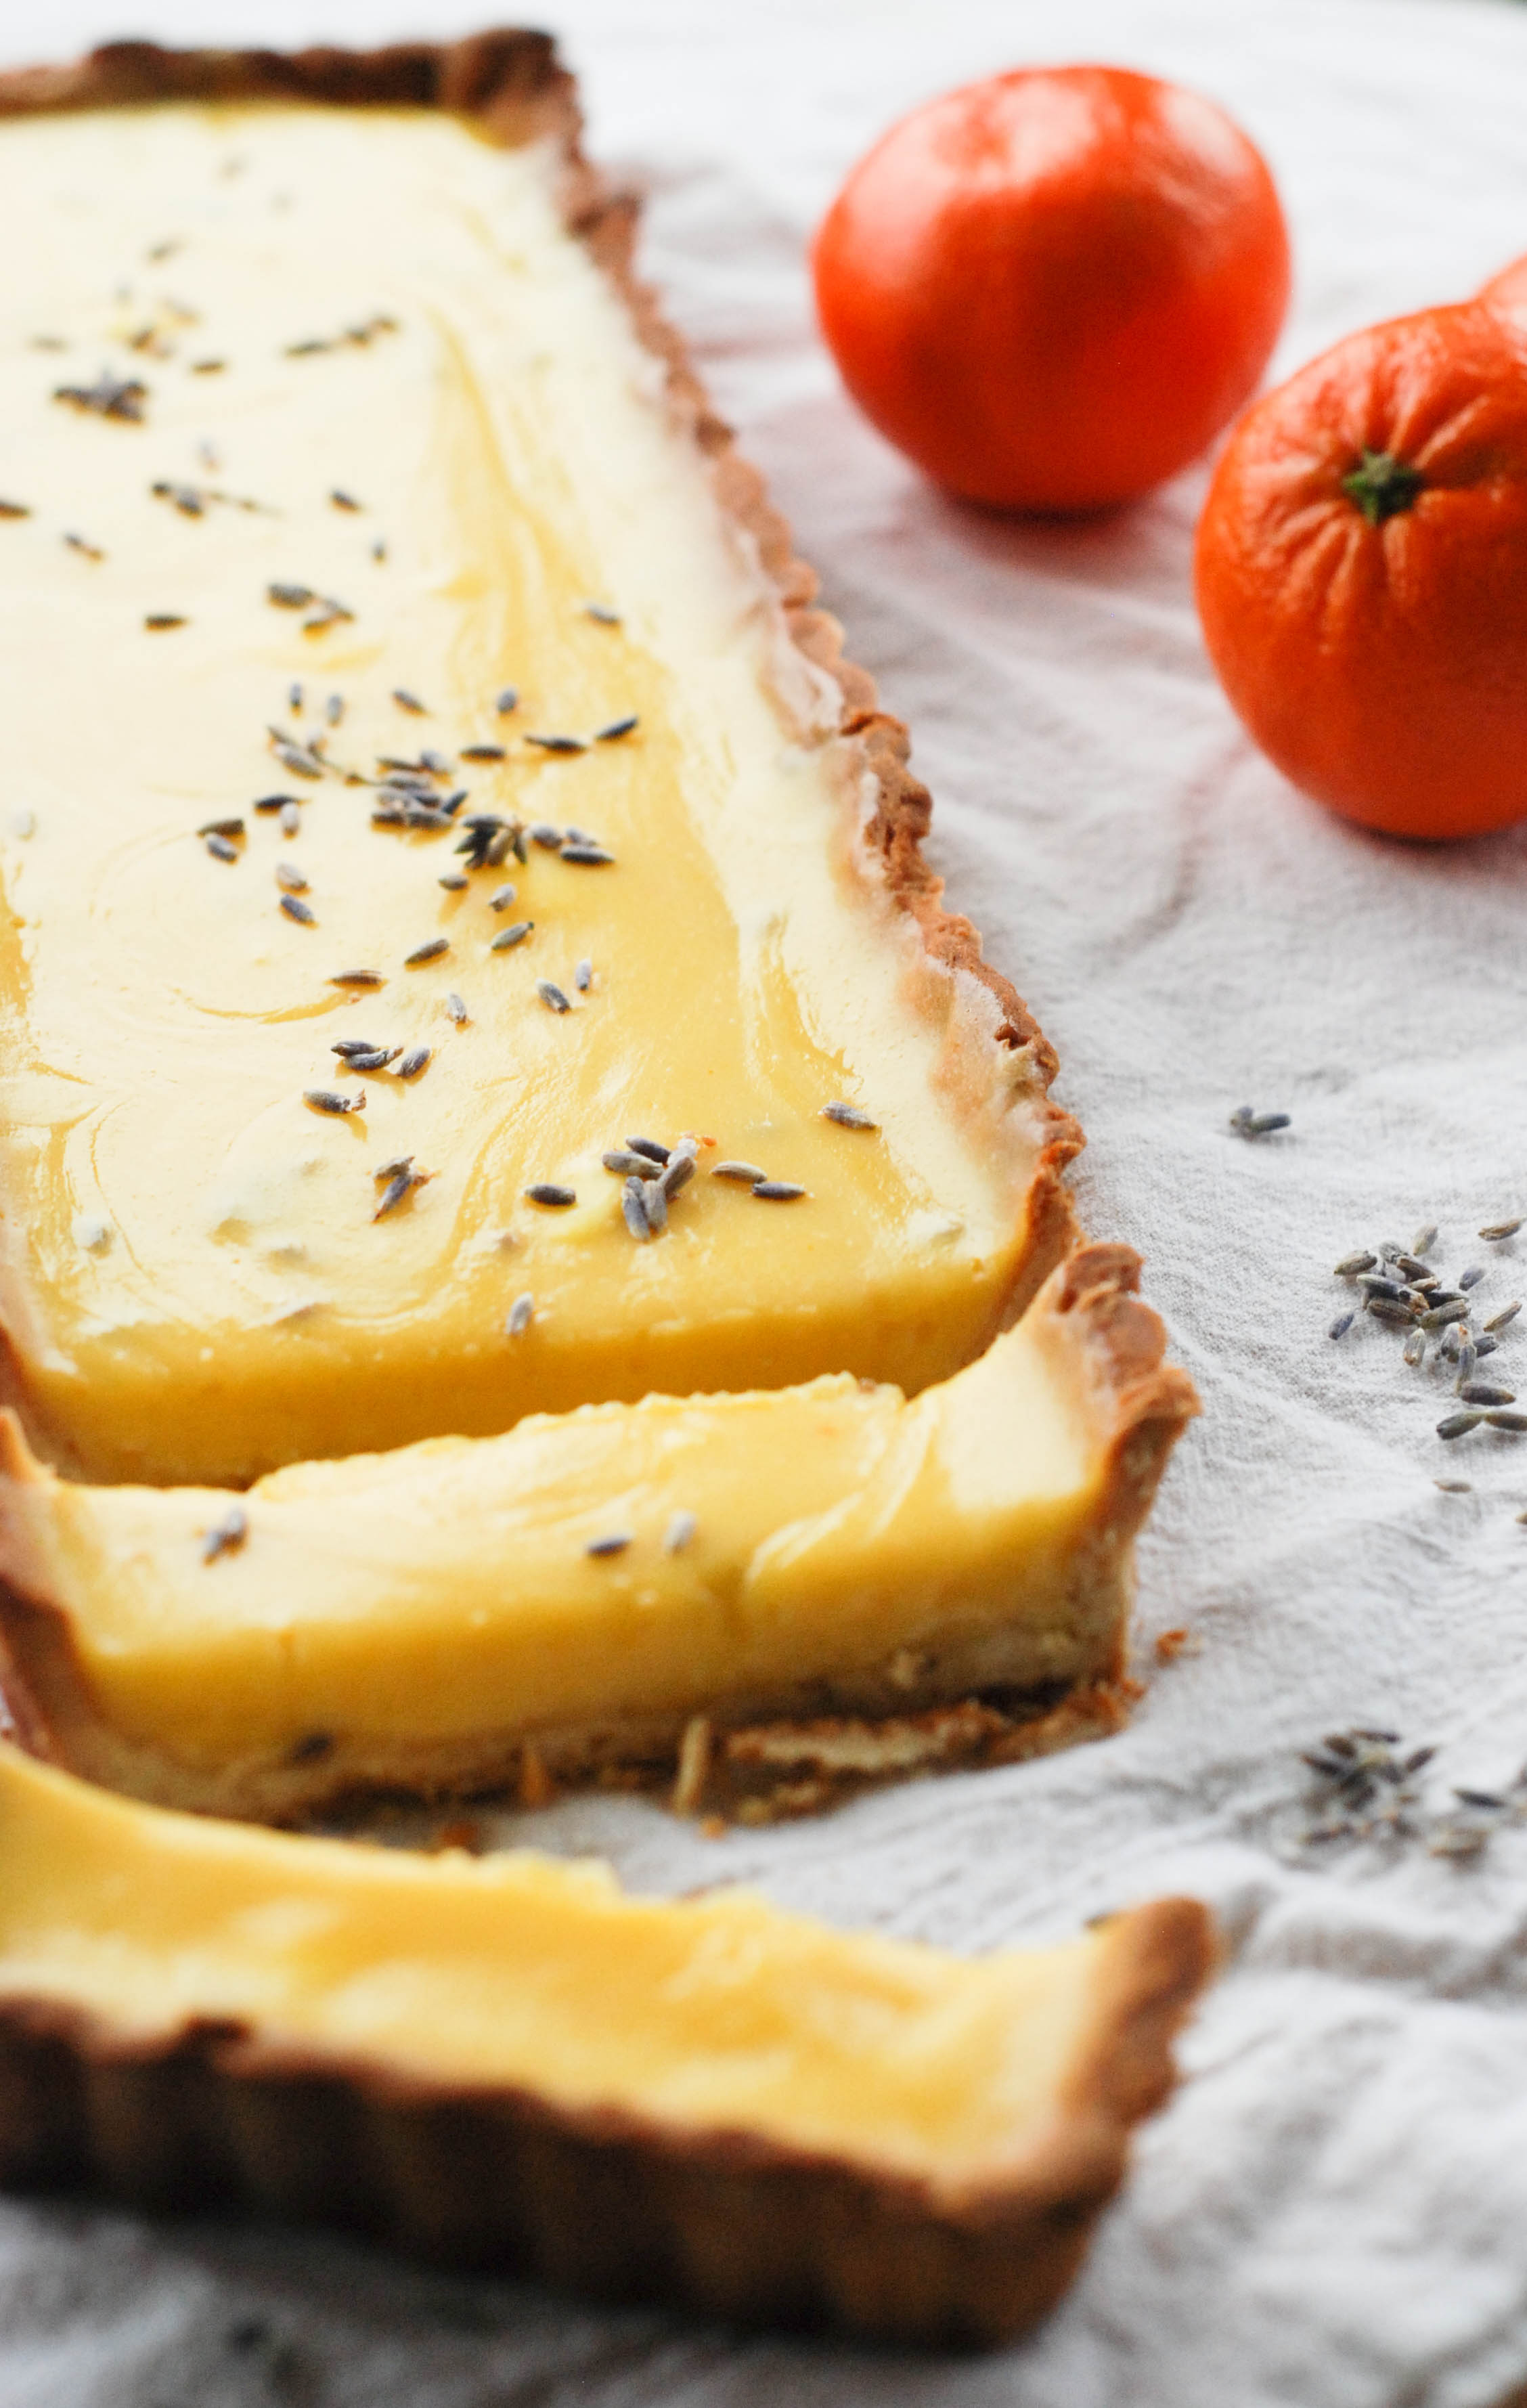 Orange Lavender Tart